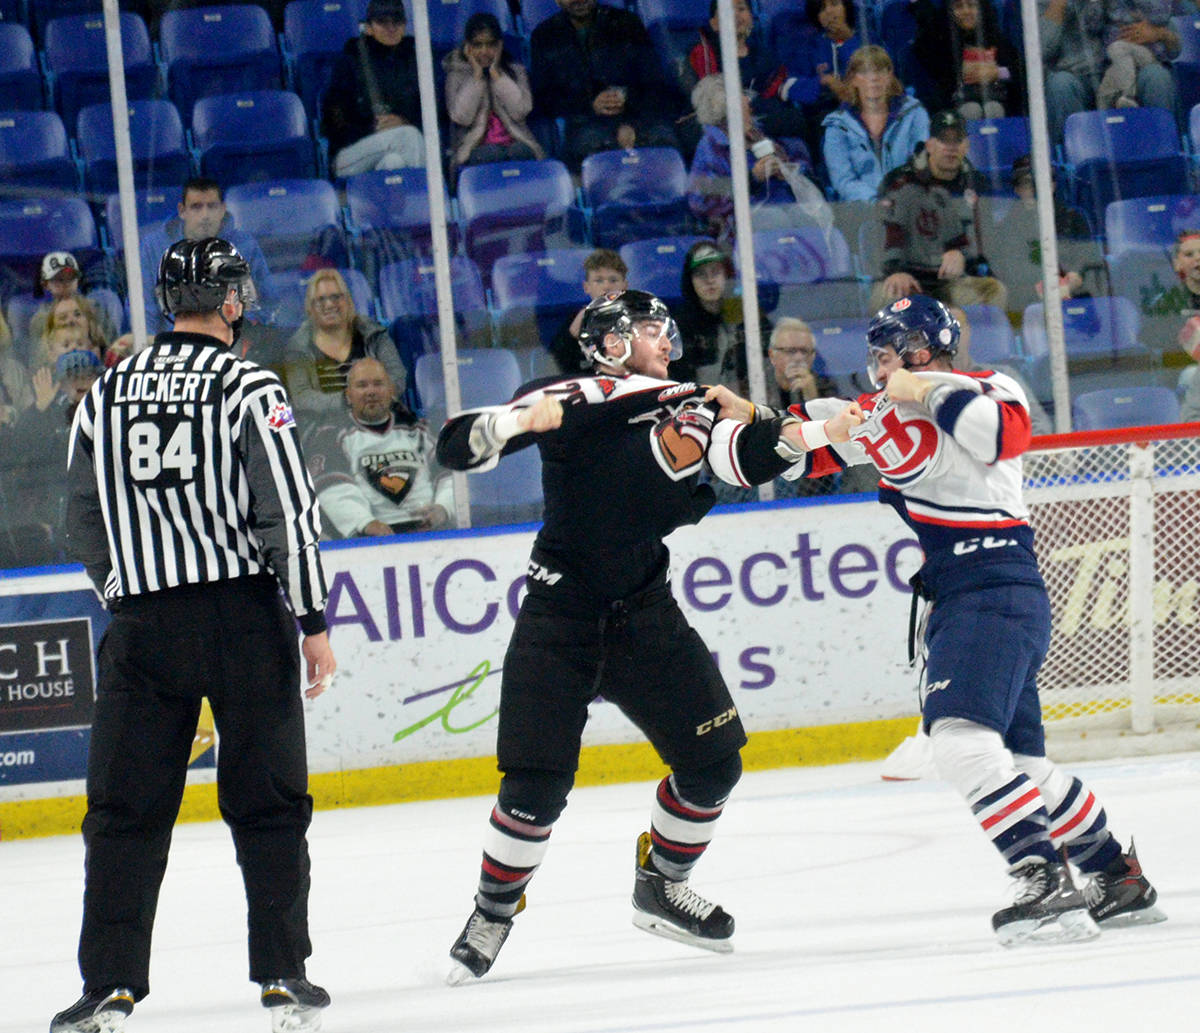 Vancouver Giants Darian Skeoch and Lethbridge Hurricanes' Tanner Nagel drop the gloves, Langley Events Centre on Nov. 22. Gary Ahuja Langley Times